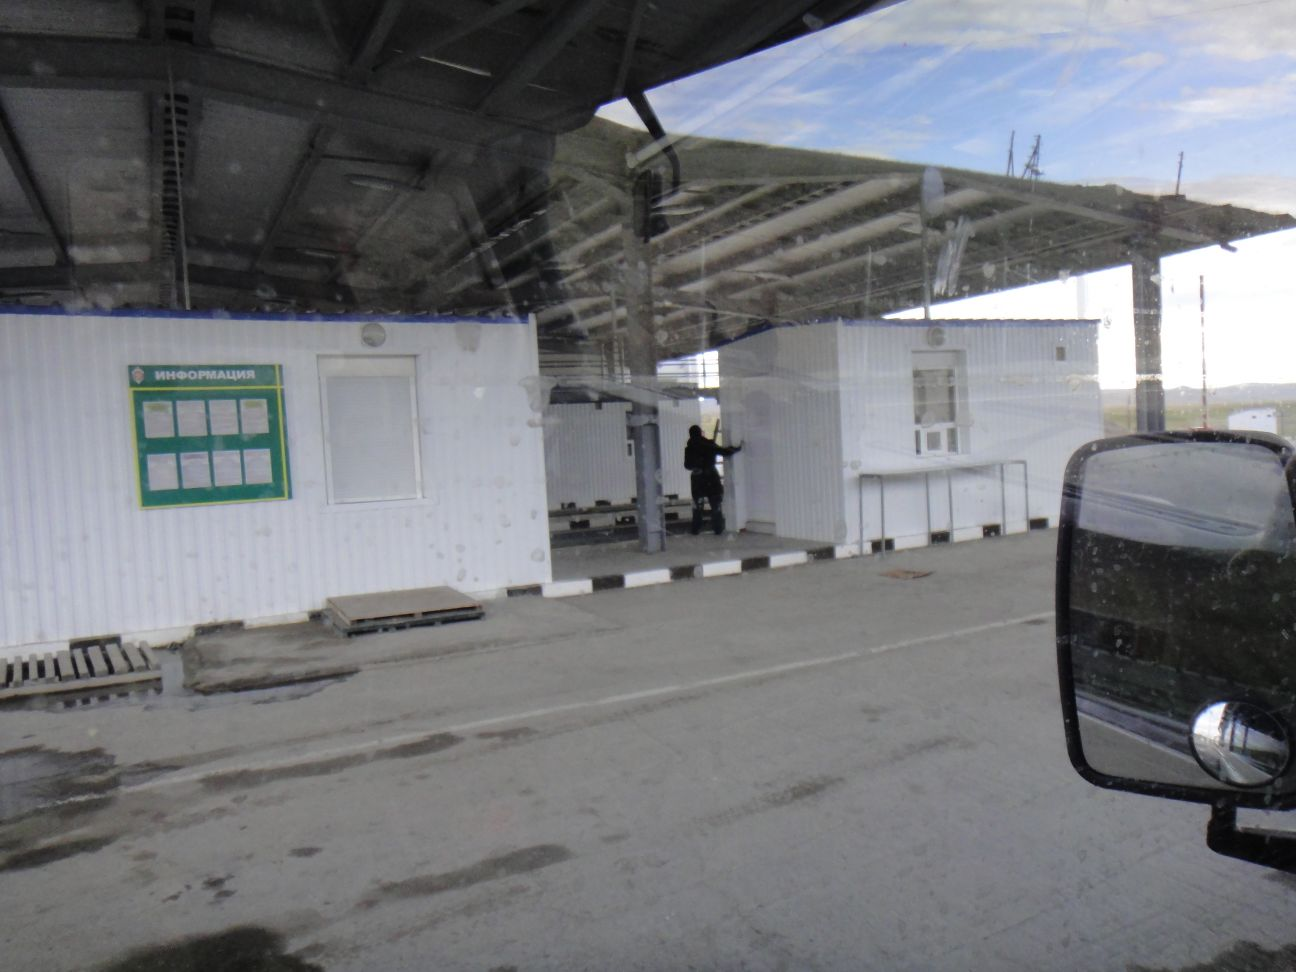 the undercover area with passport control (left)and customs offices (right) visible